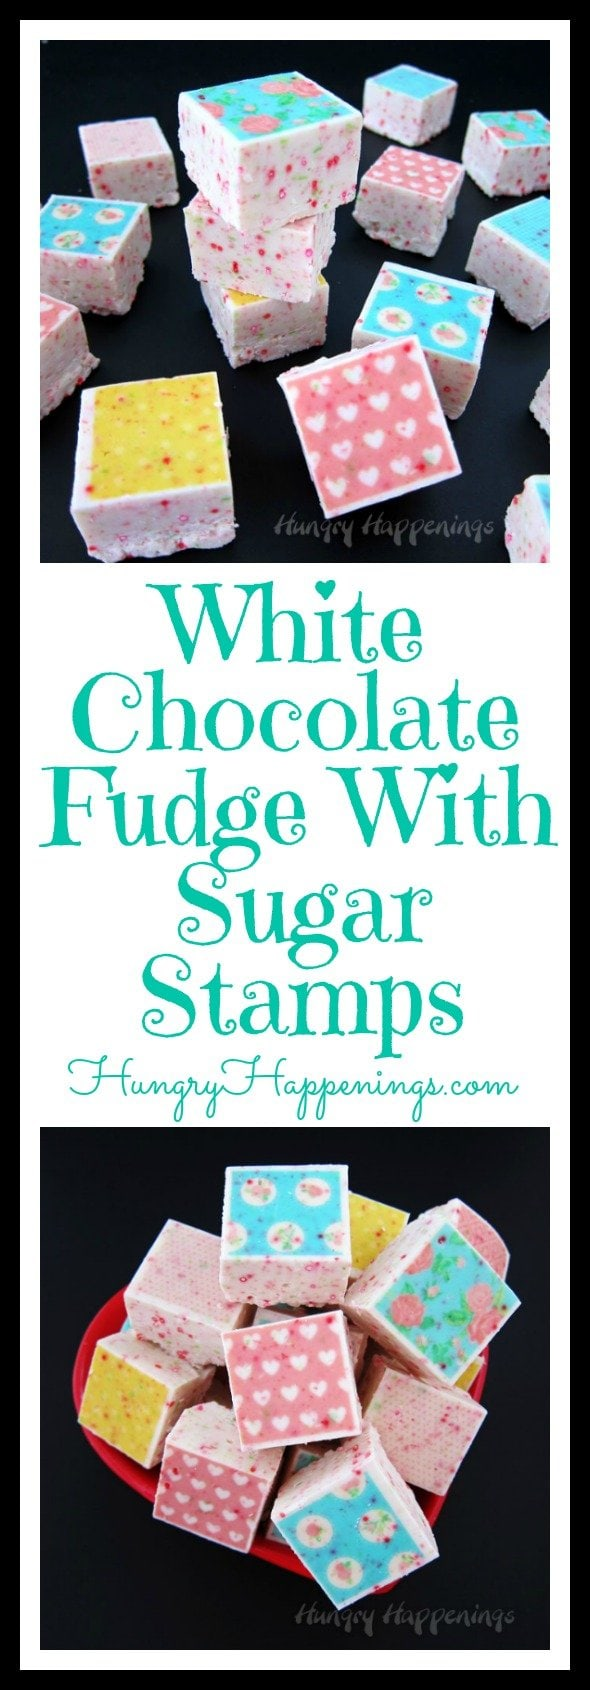 Add colorful designs to your fudge, chocolate, or meringues in one easy step. Today I'll show you how to Decorate White Chocolate Fudge with Sugar Stamps for Valentine's Day or any day.